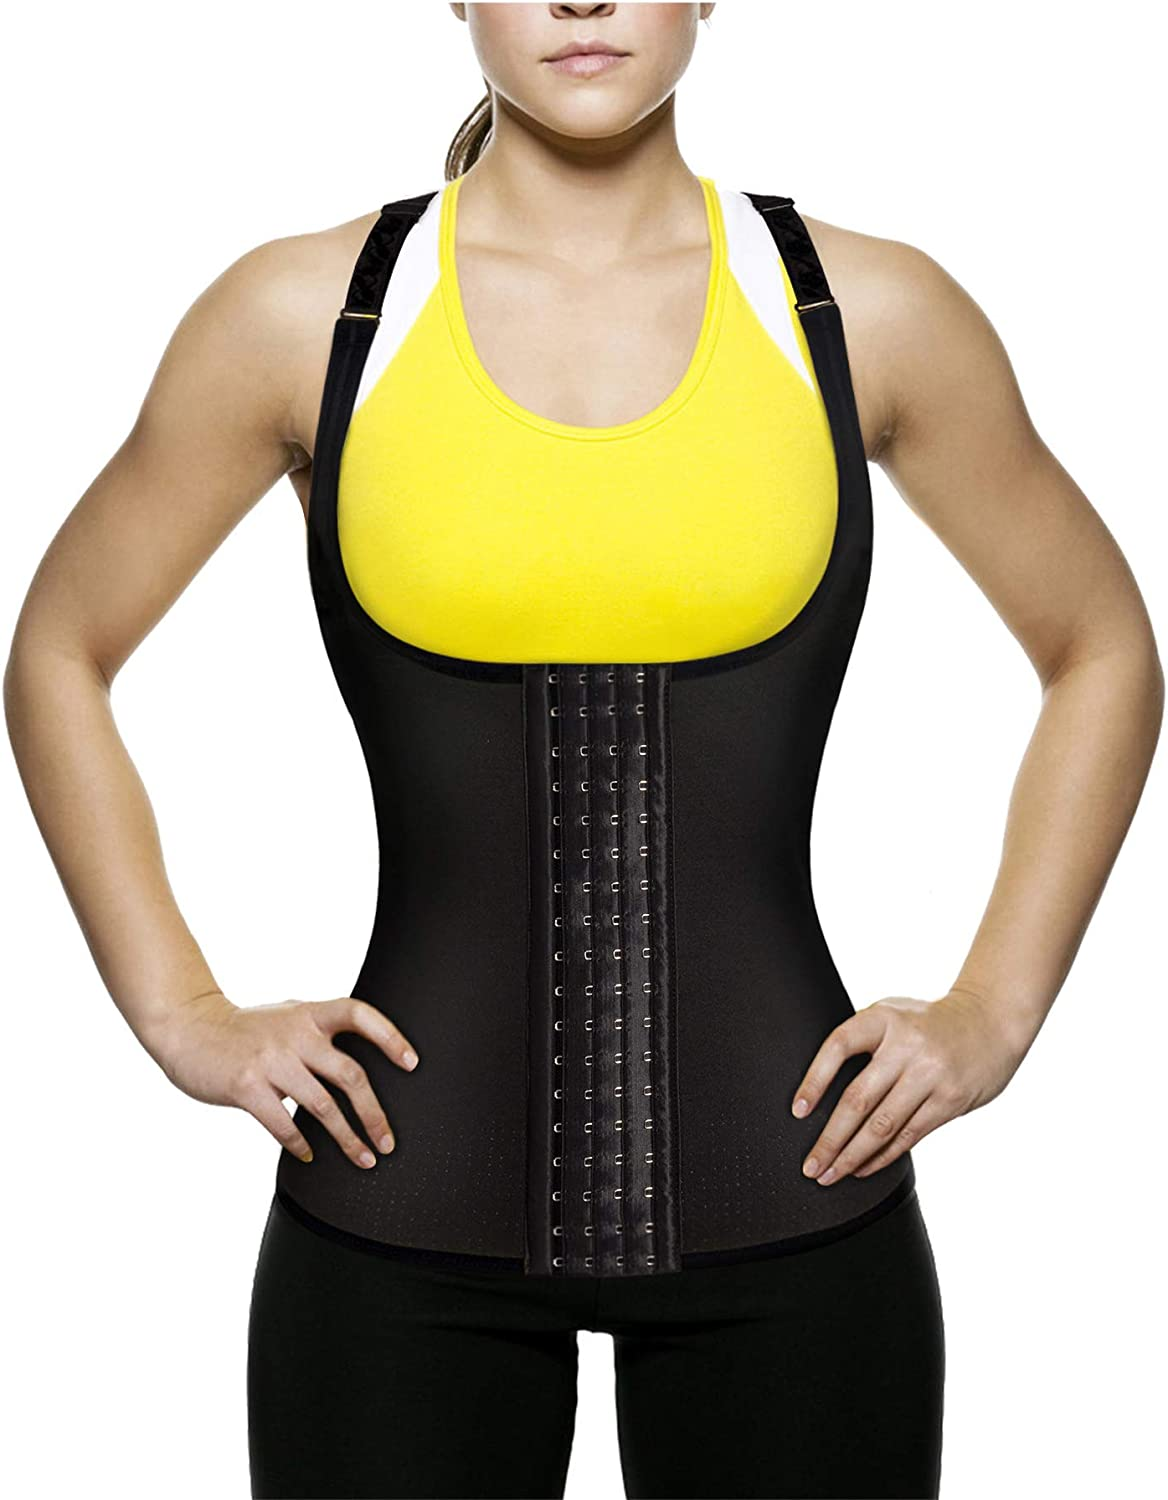 Ursexyly Women's Waist Trainer Tank Top Slimming Vest Tummy Fat Burner